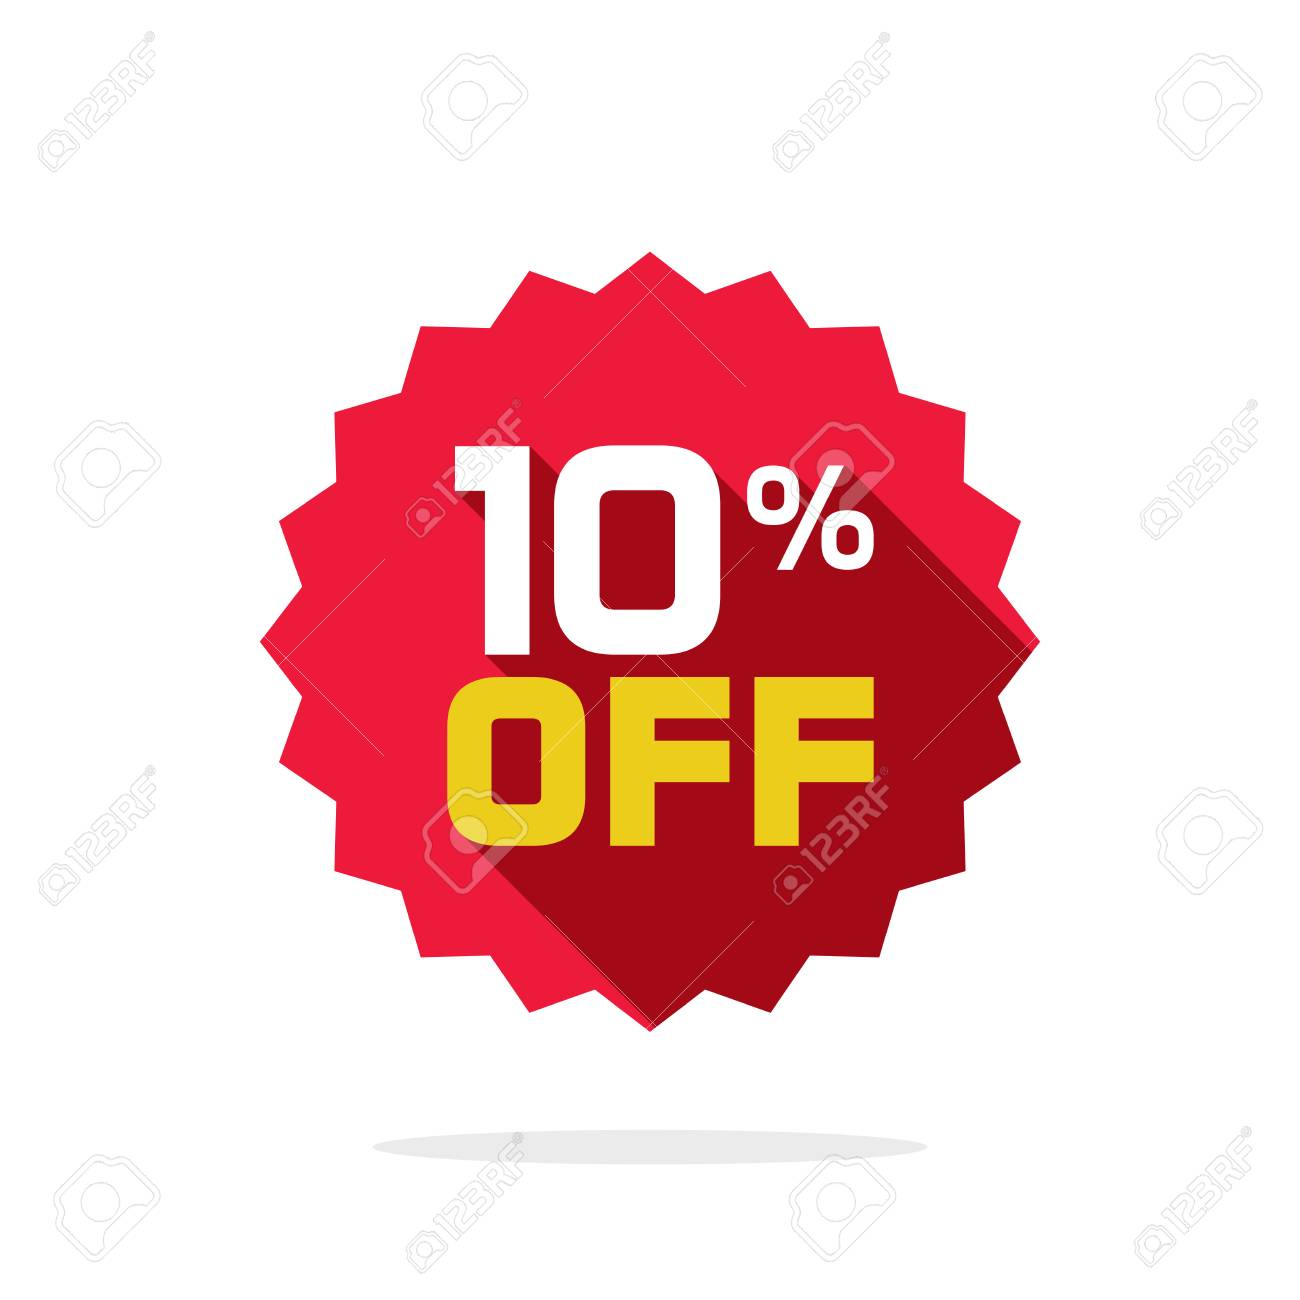 Sale tag vector badge template, 10 off sale label symbol, 10 percent discount promotion flat icon with long shadow, clearance sale sticker emblem, bargain red sign rosette design isolated on white - 87662192